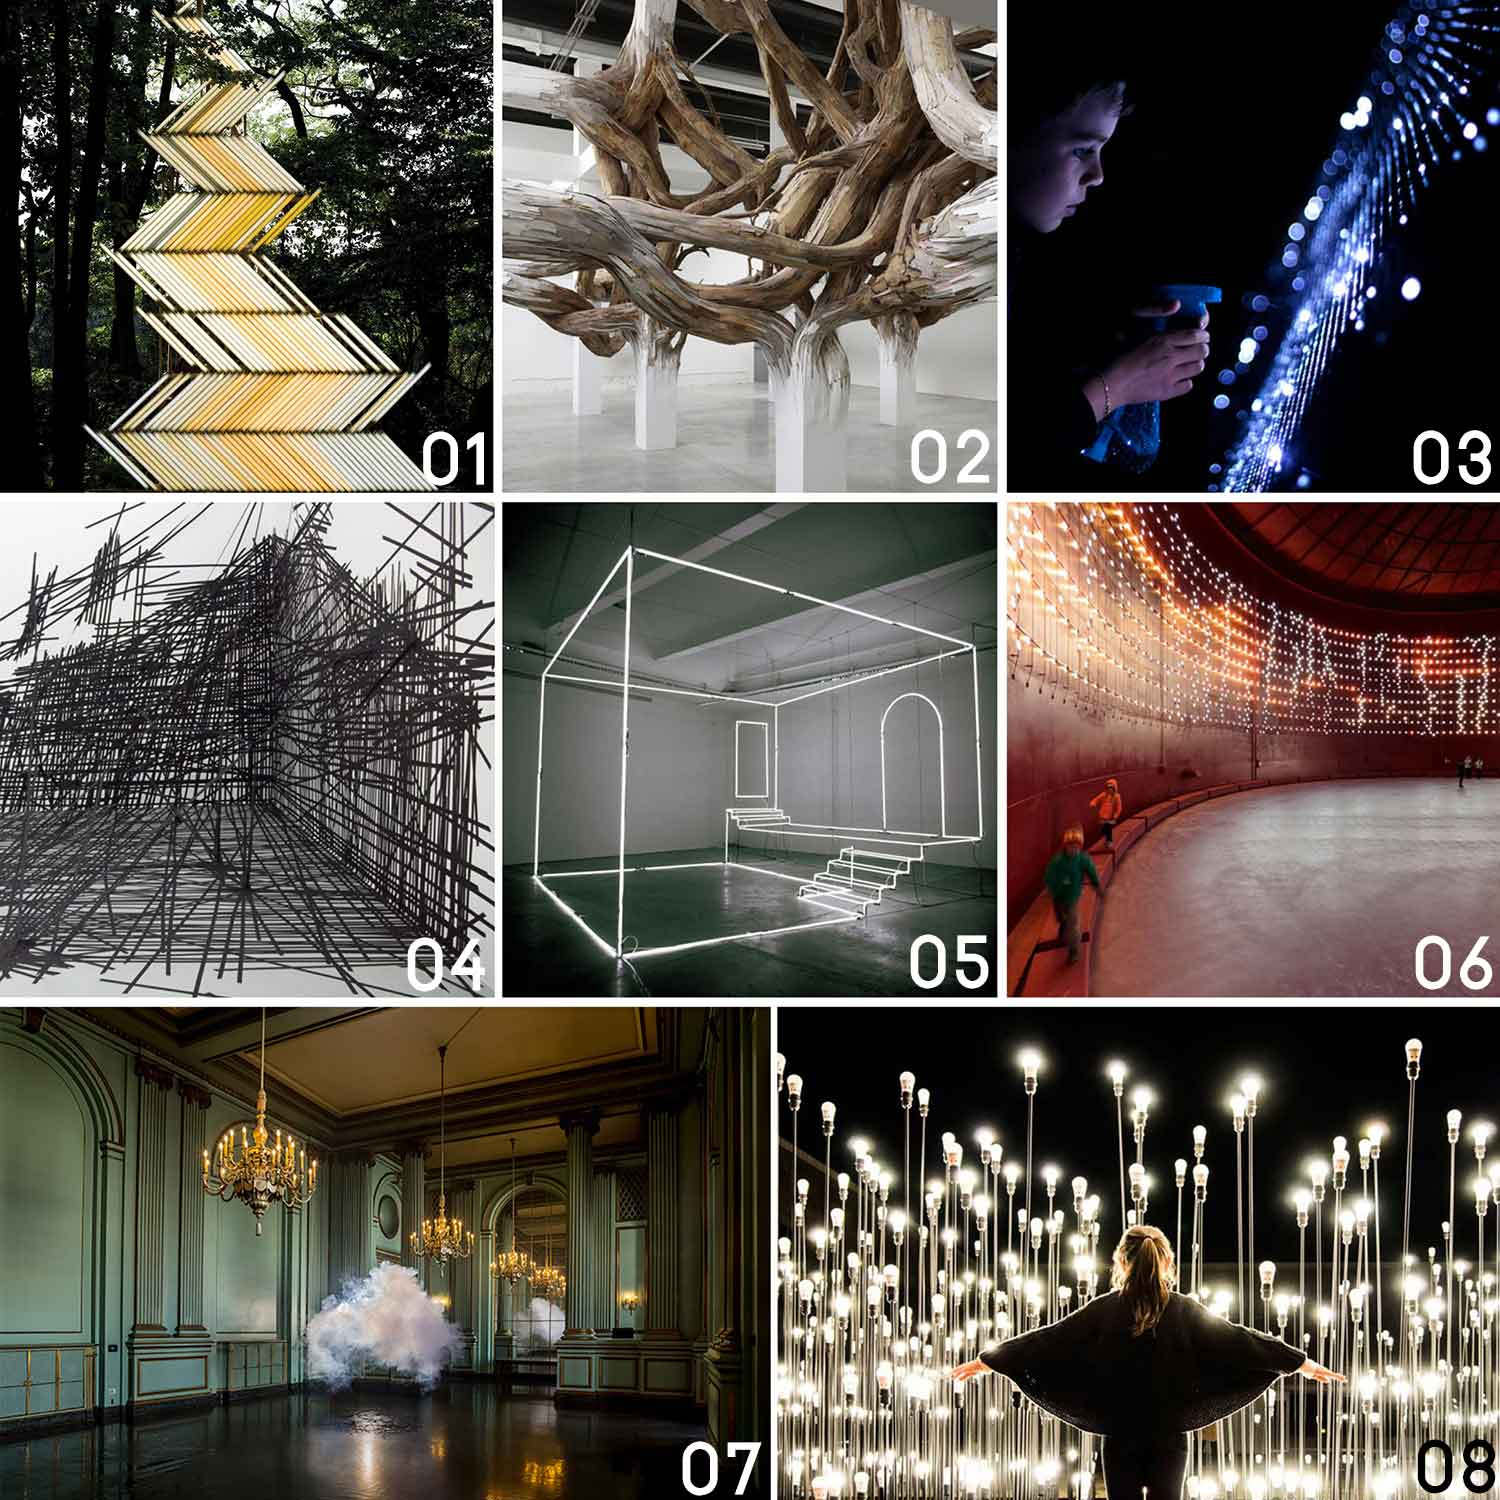 Art Installations | Yellowtrace 2013 Archive